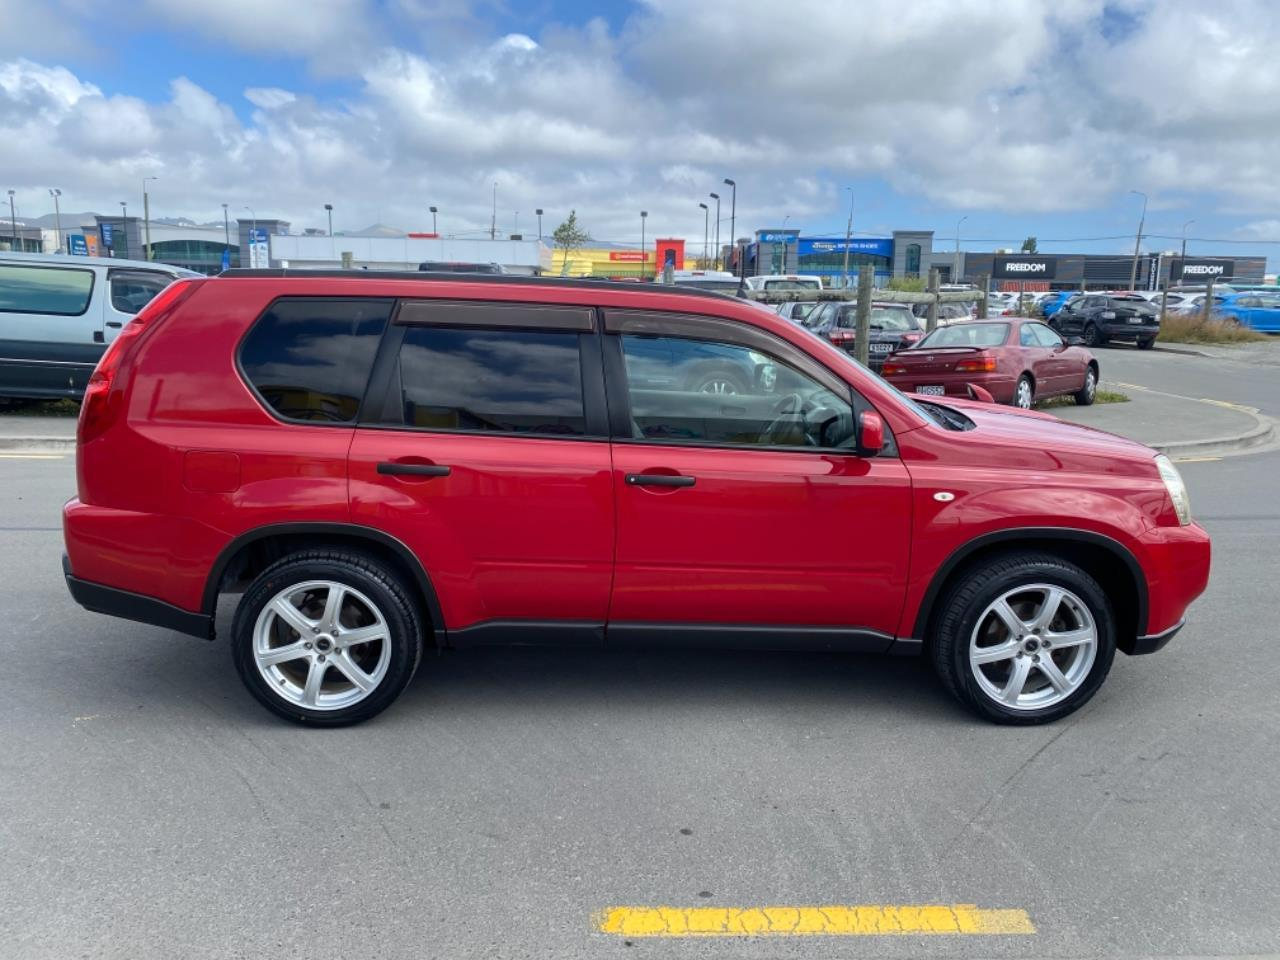 image-4, 2007 Nissan X-TRAIL 20S 4WD at Christchurch